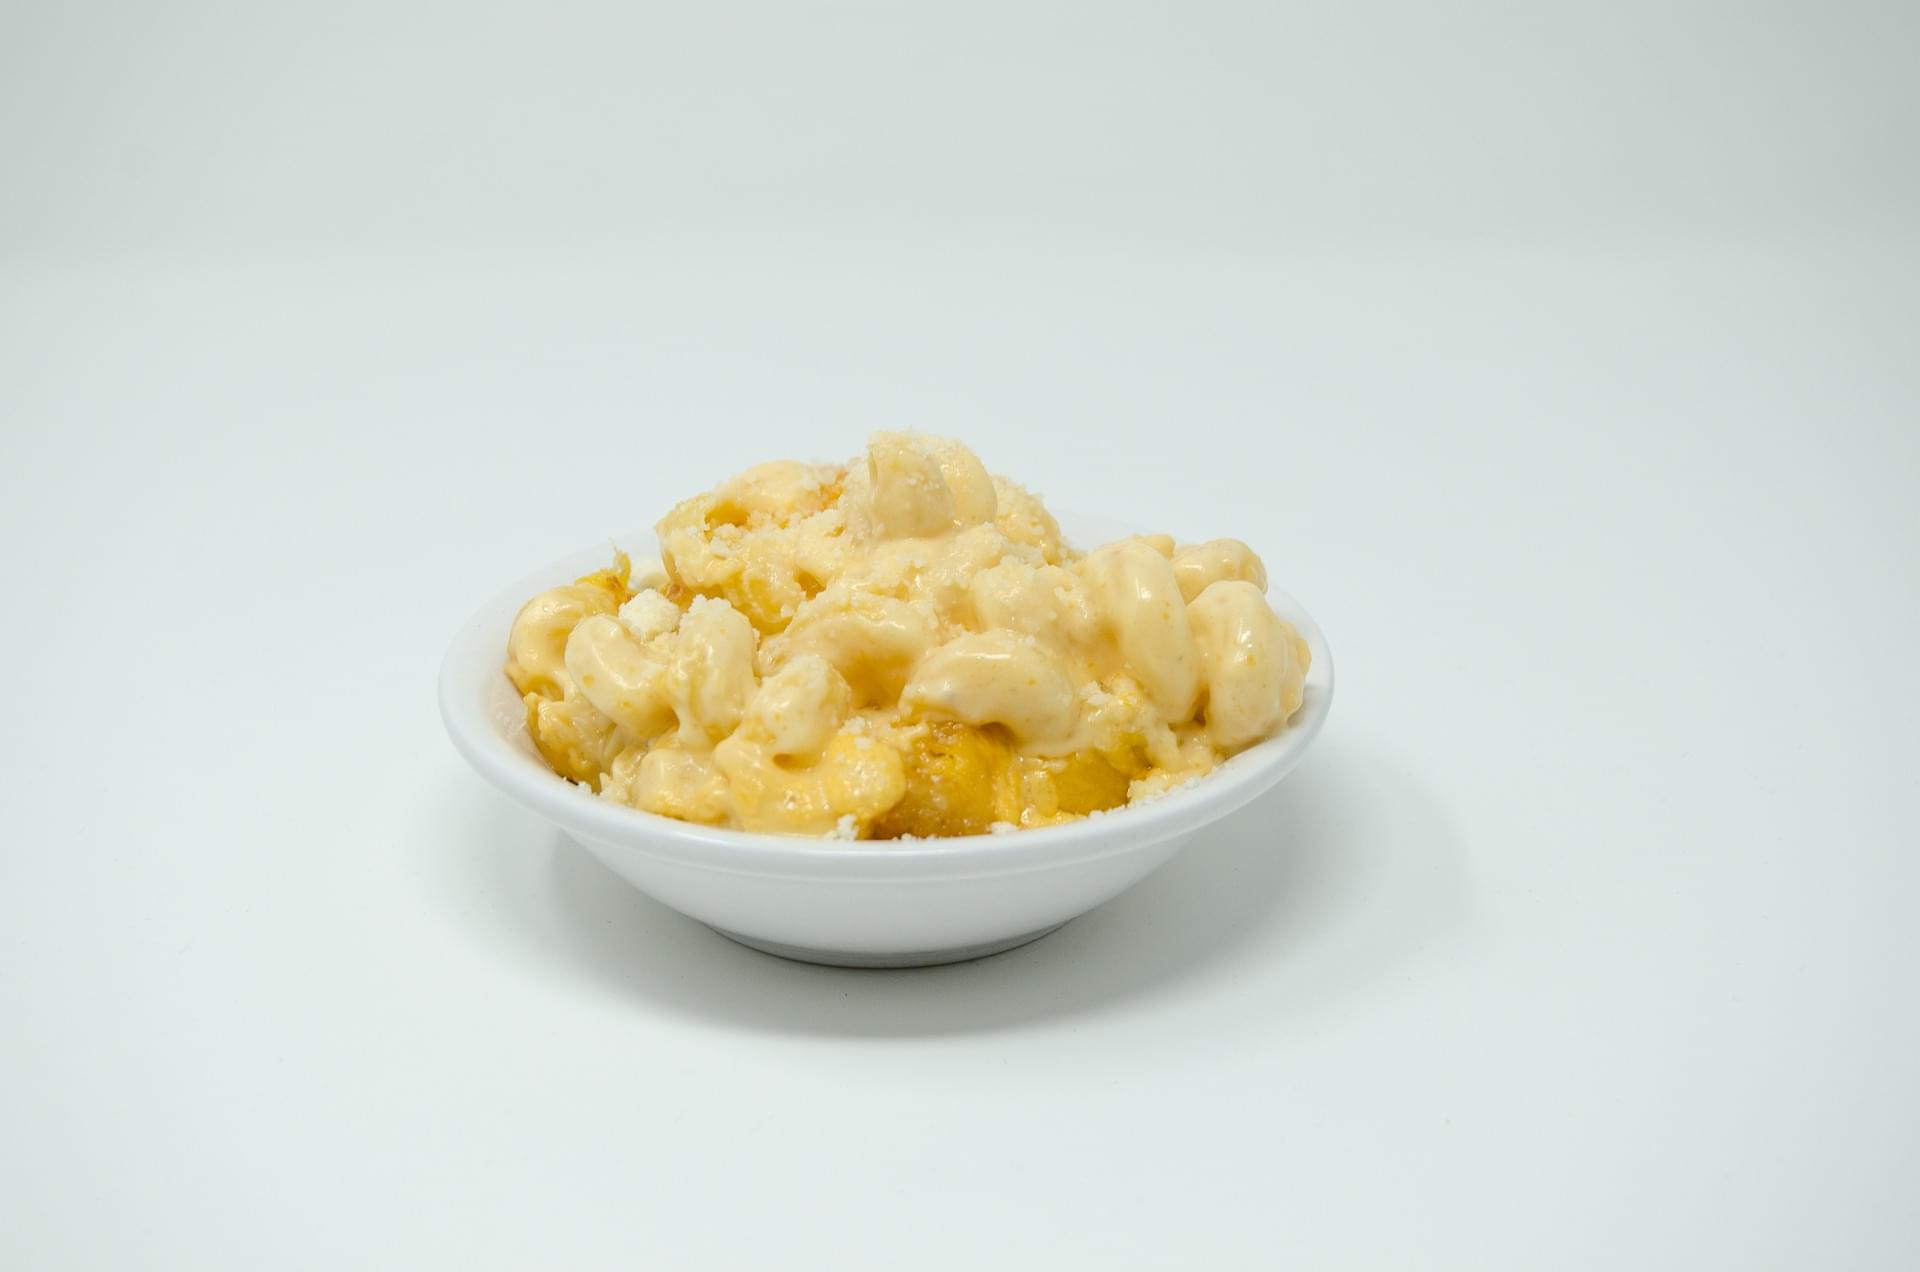 New Cheetos Mac and Cheese boxes! Here's where to get them